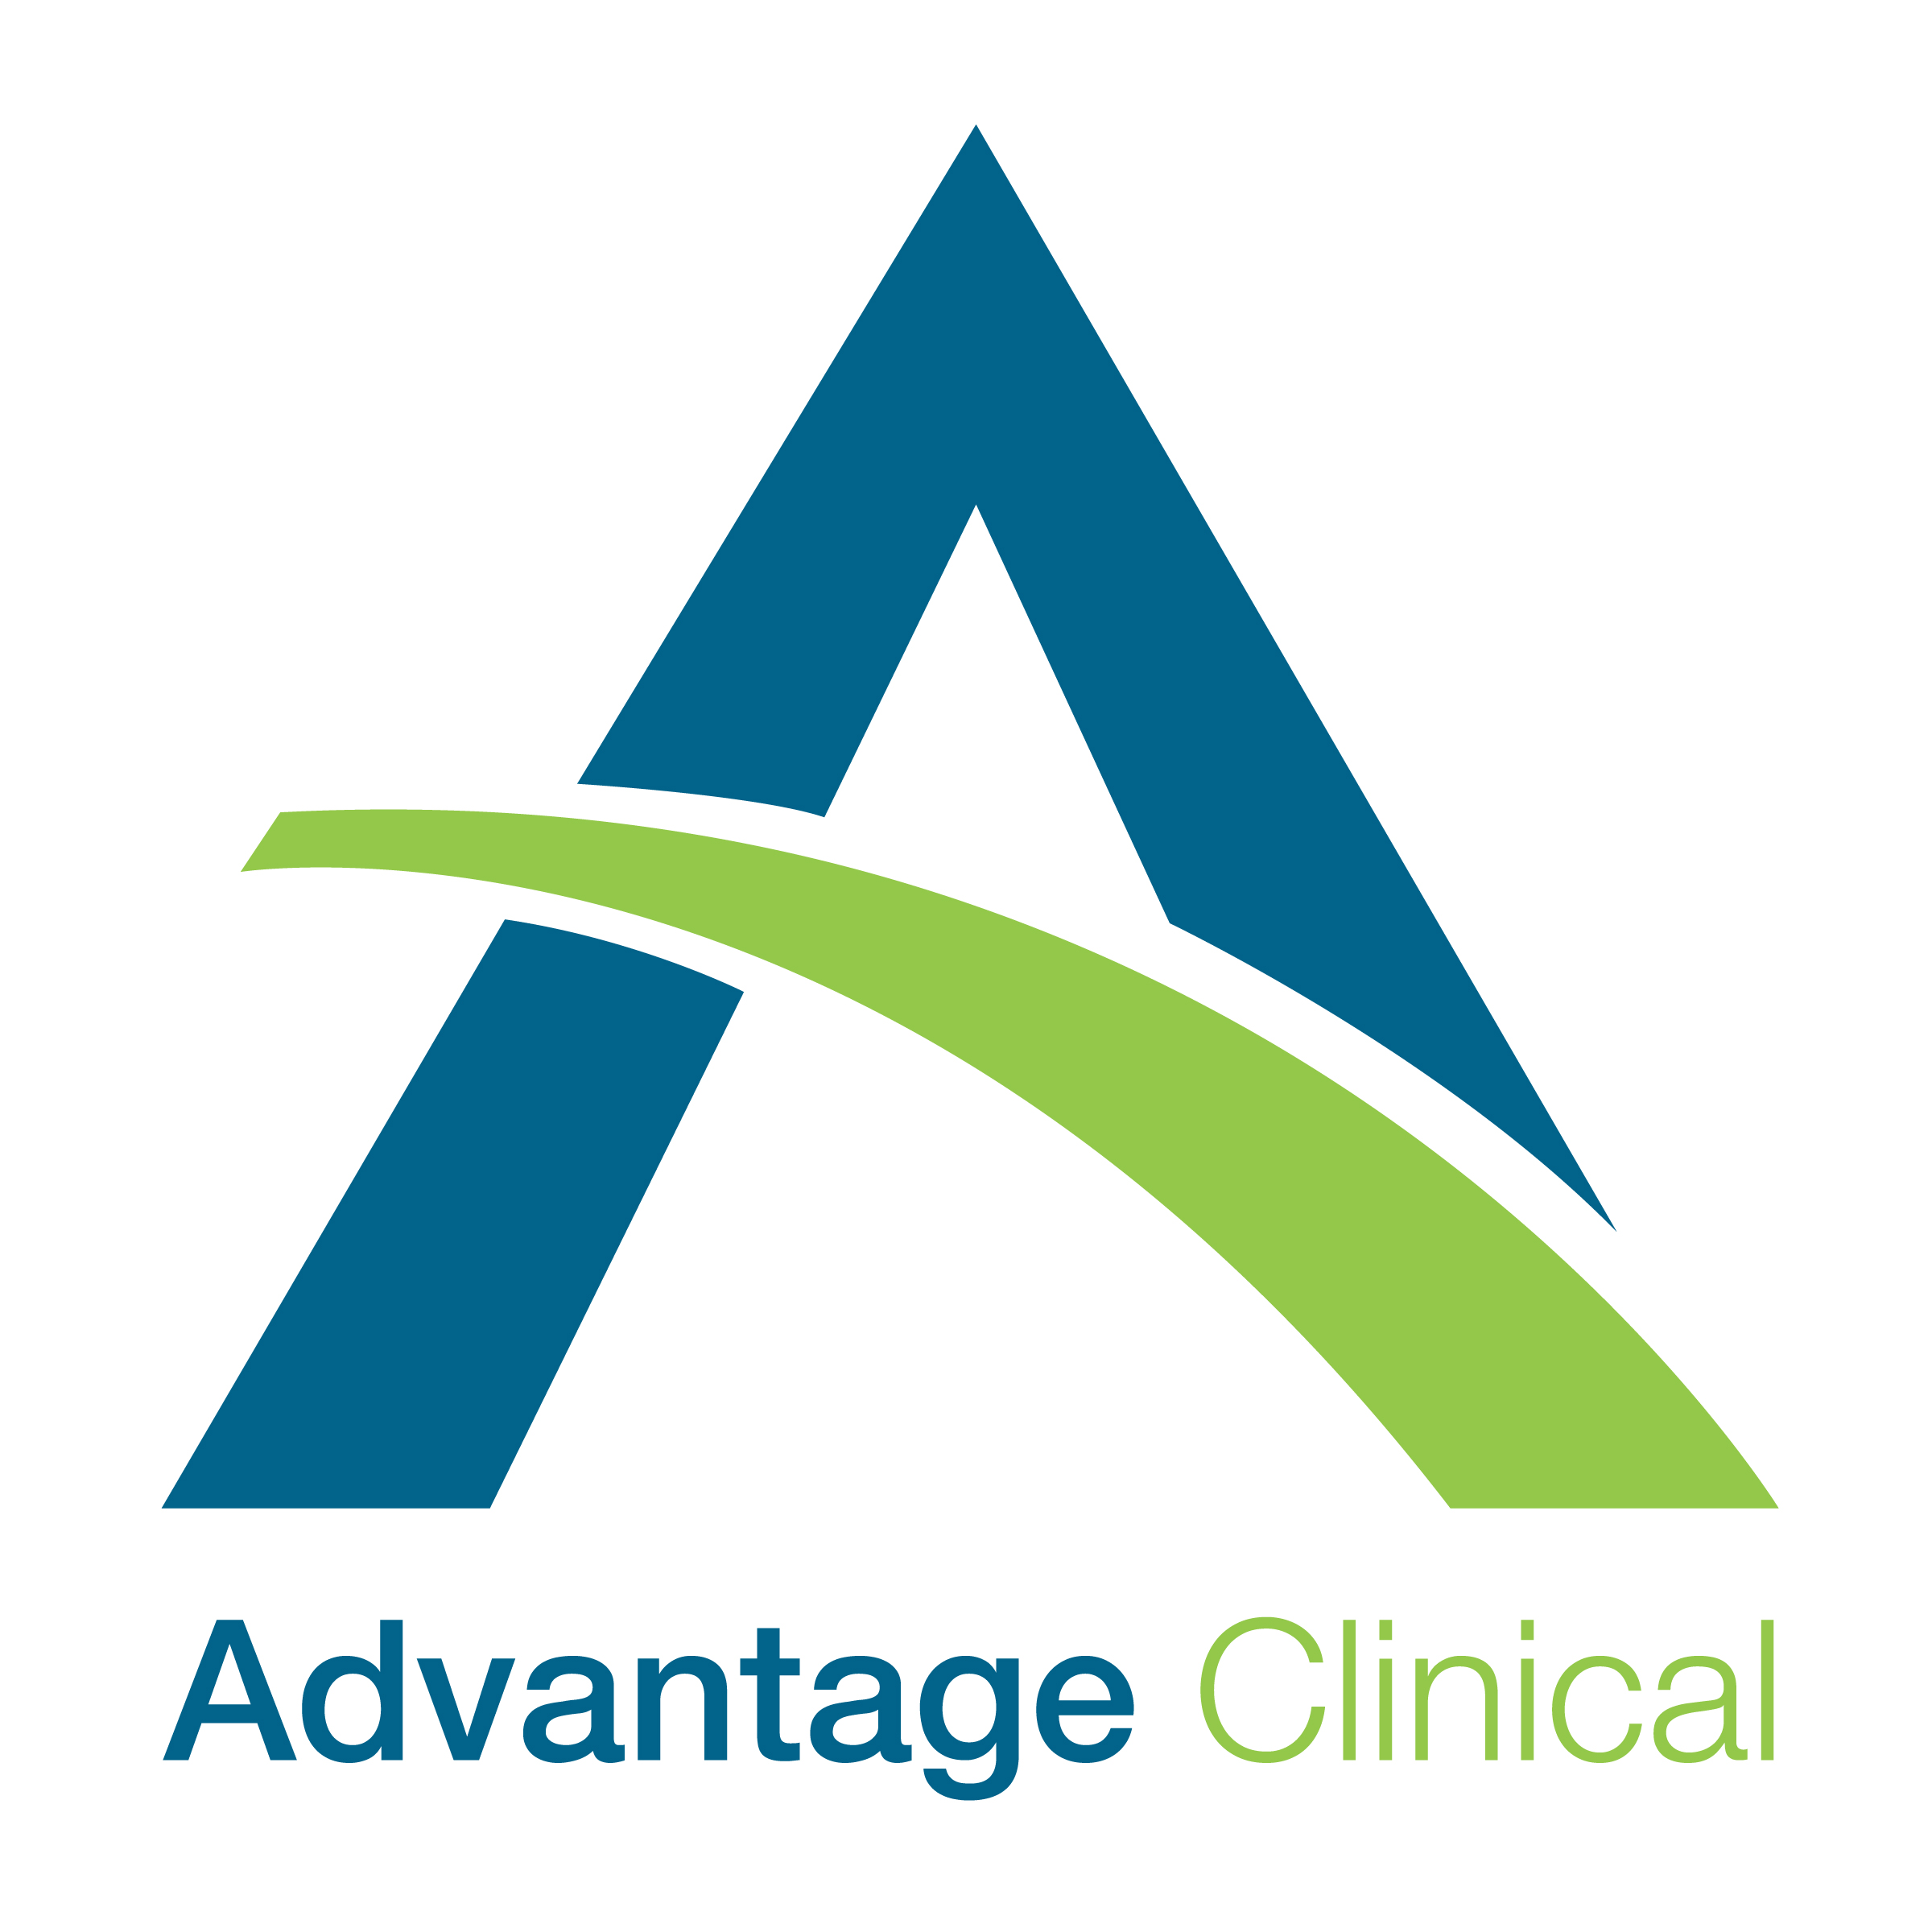 Advantage Clinical